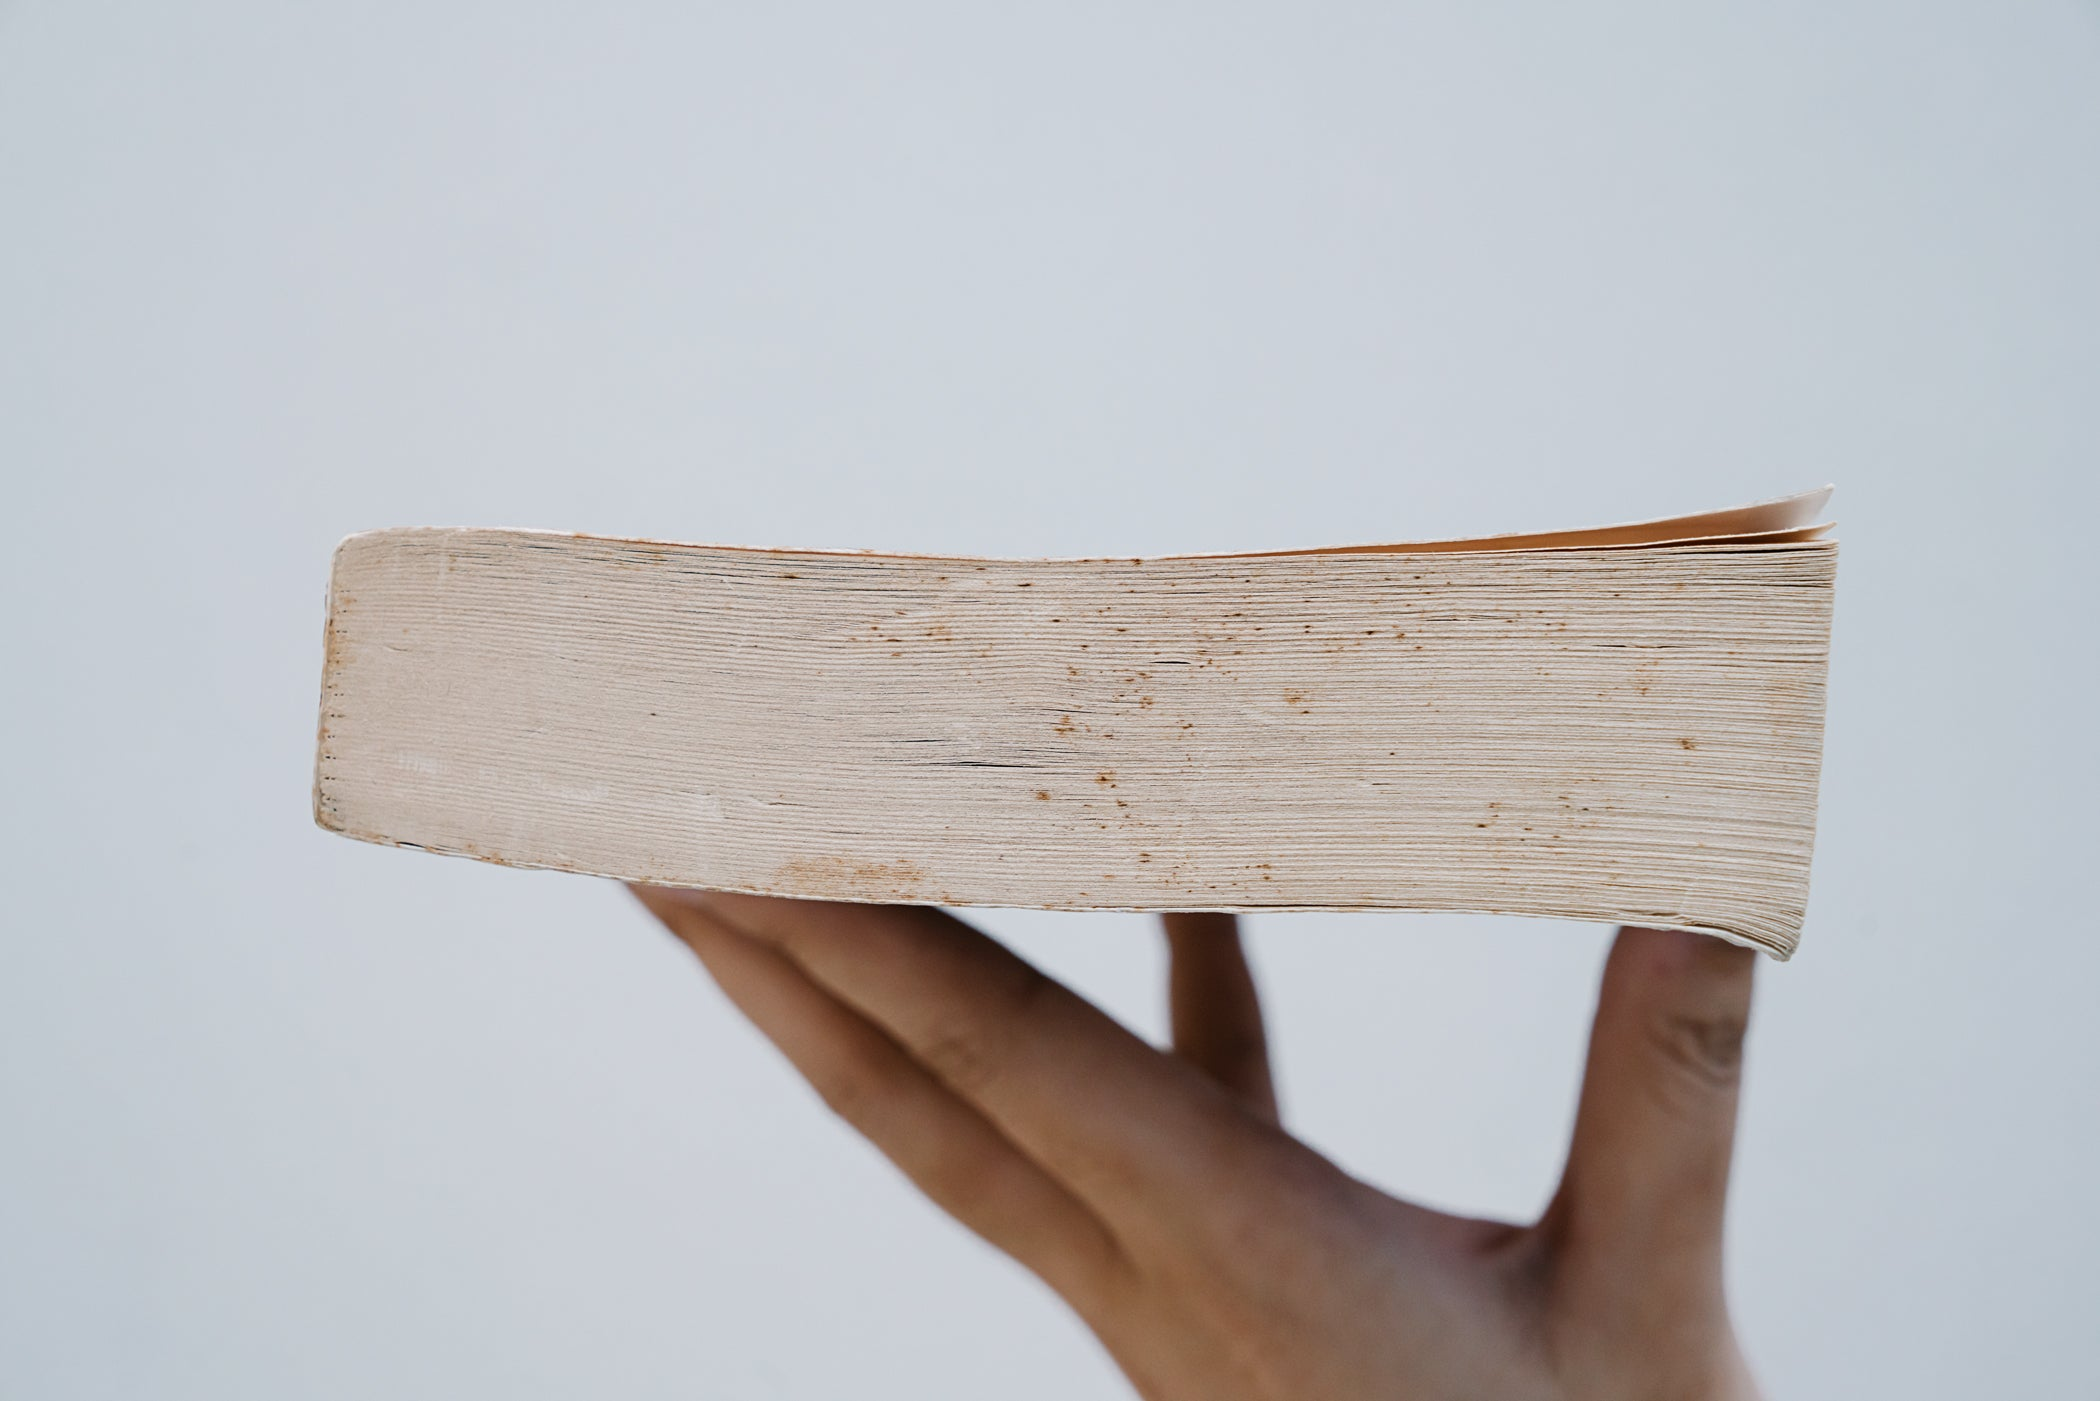 Edges of book in Good condition